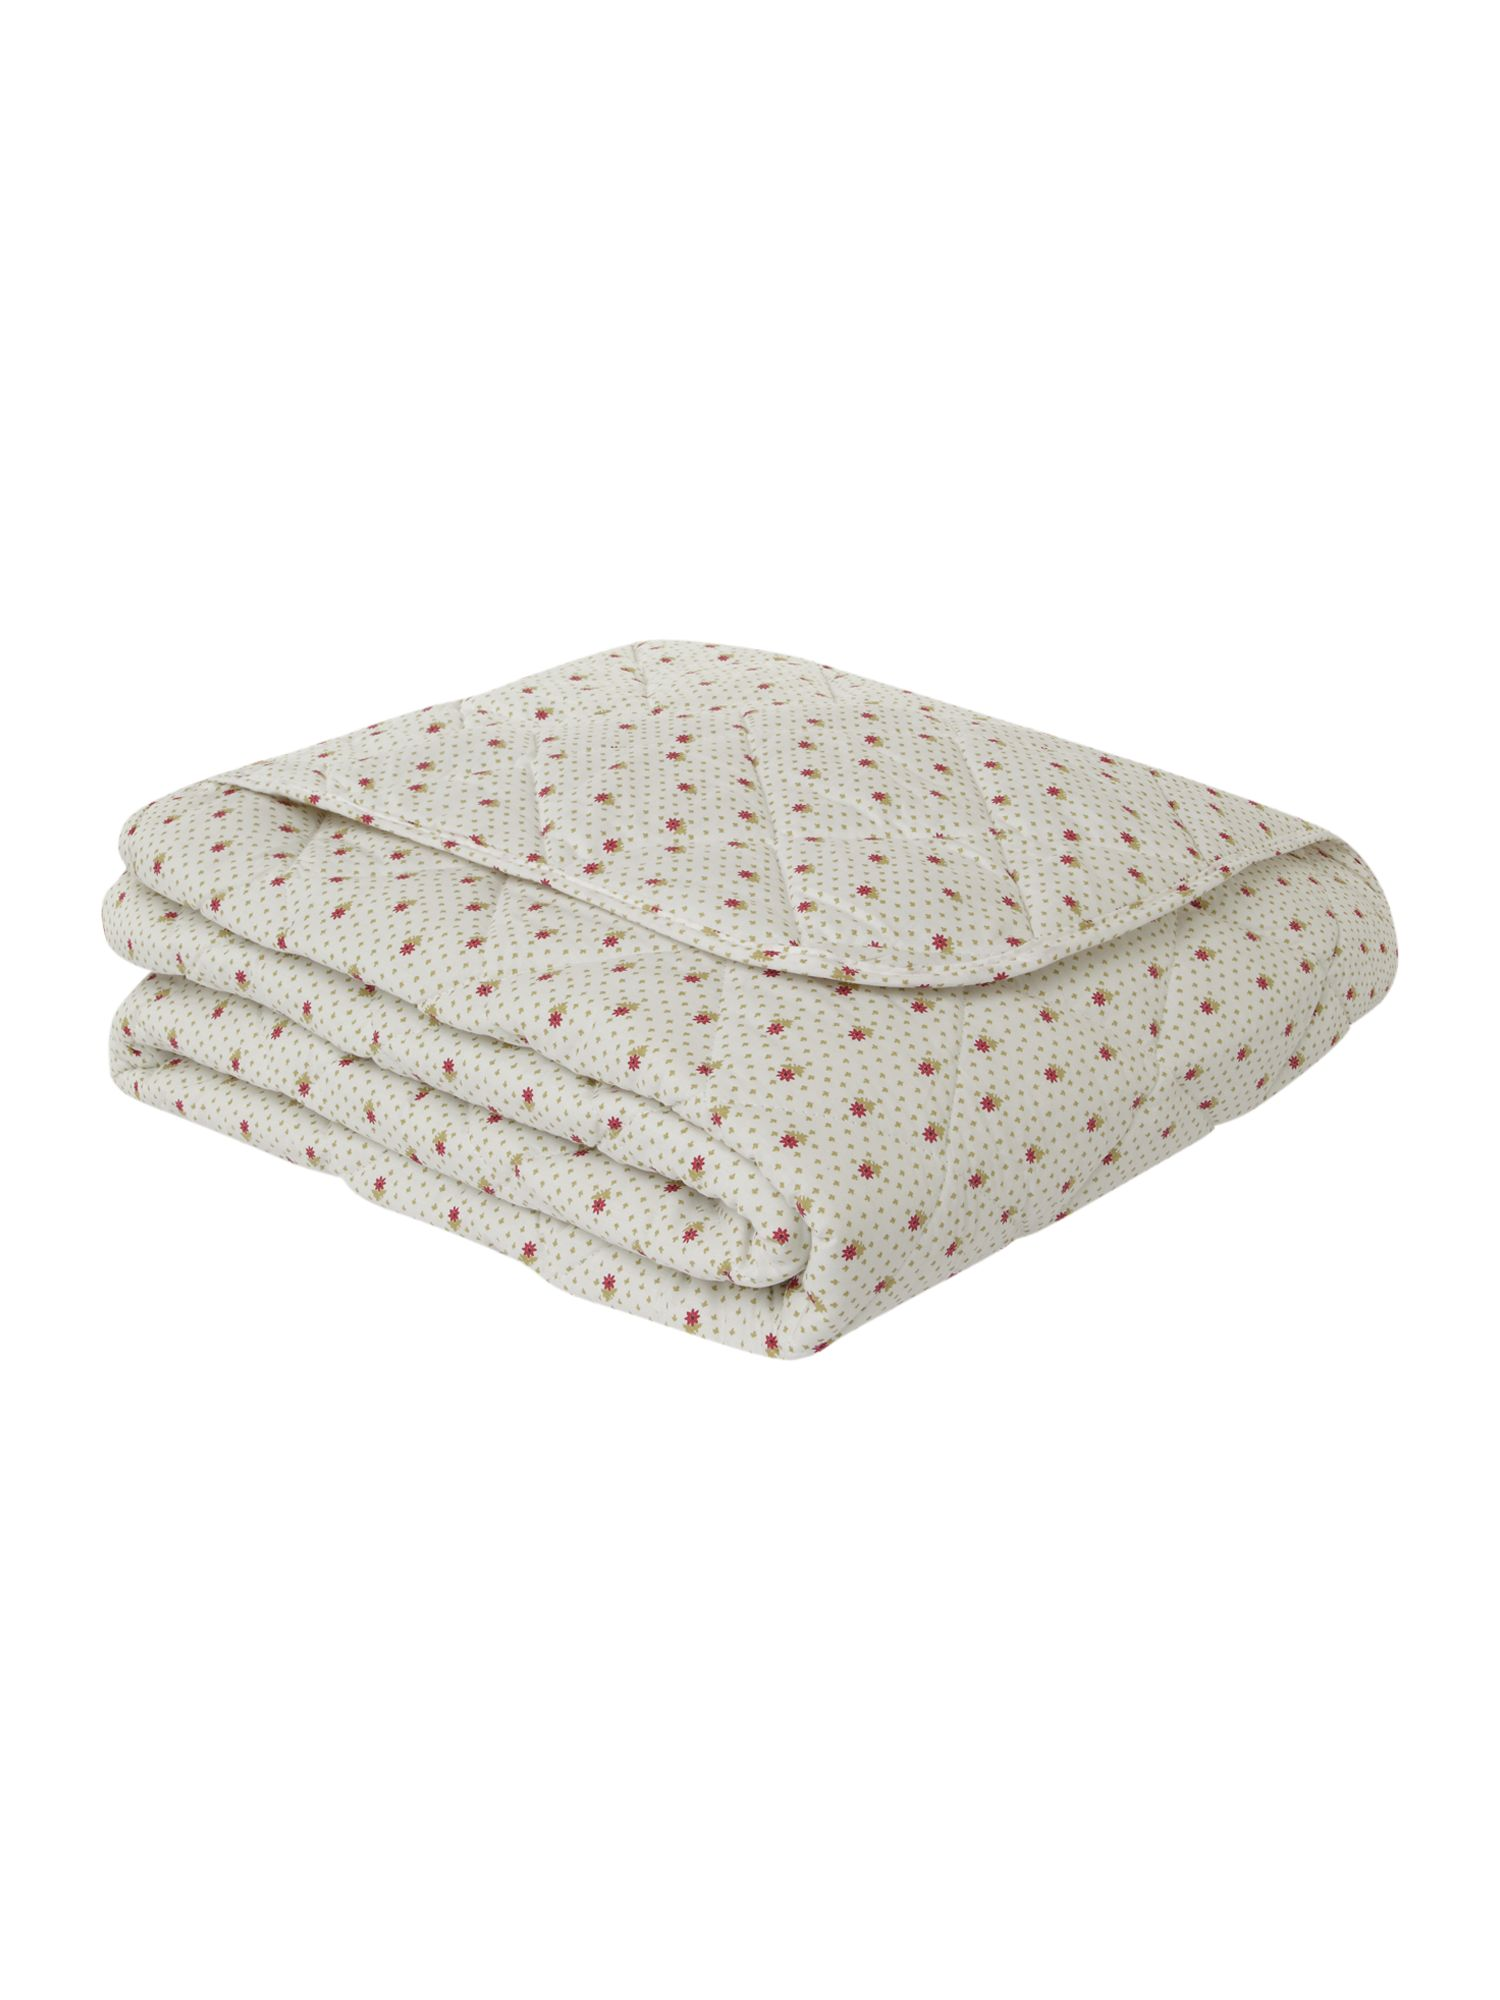 Lottie bed throw